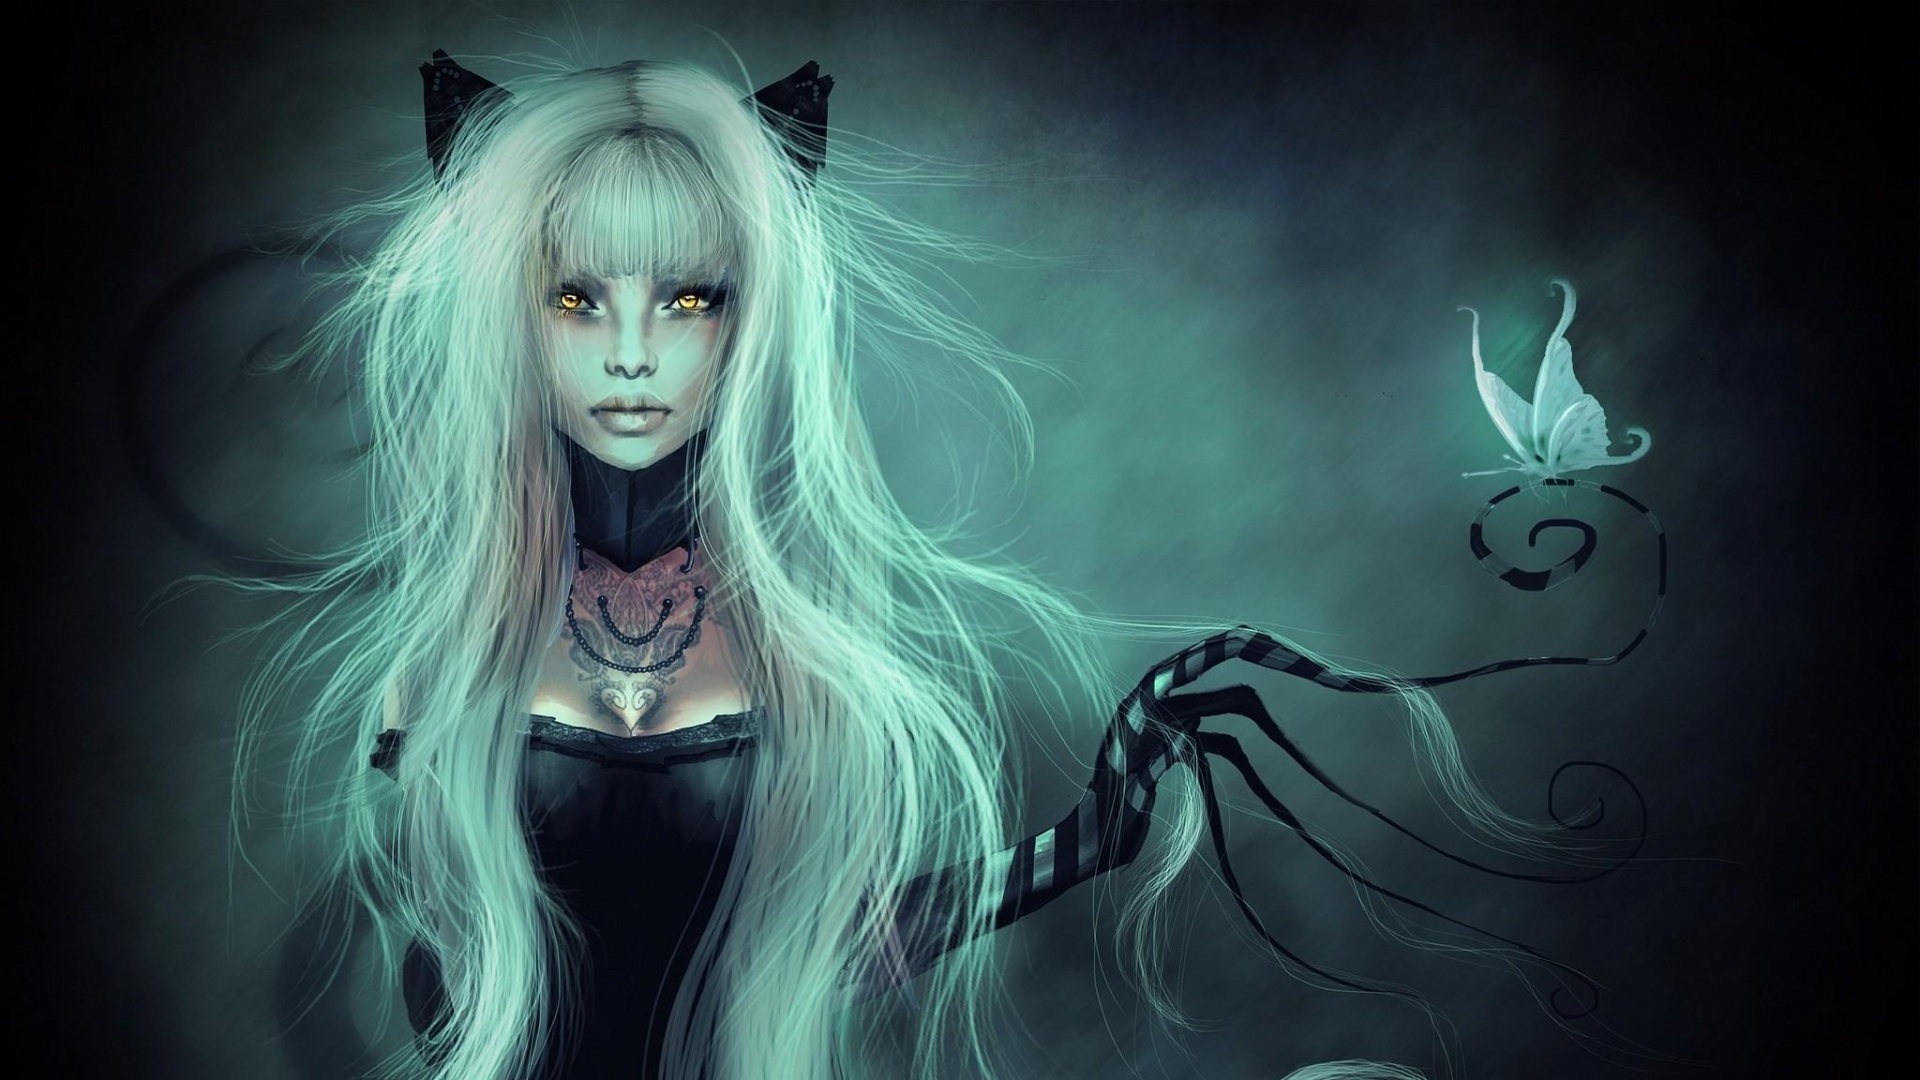 Fantasy cat woman full hd wallpaper and background image 1920x1080 fantasy women animal ears fantasy woman girl butterfly wallpaper voltagebd